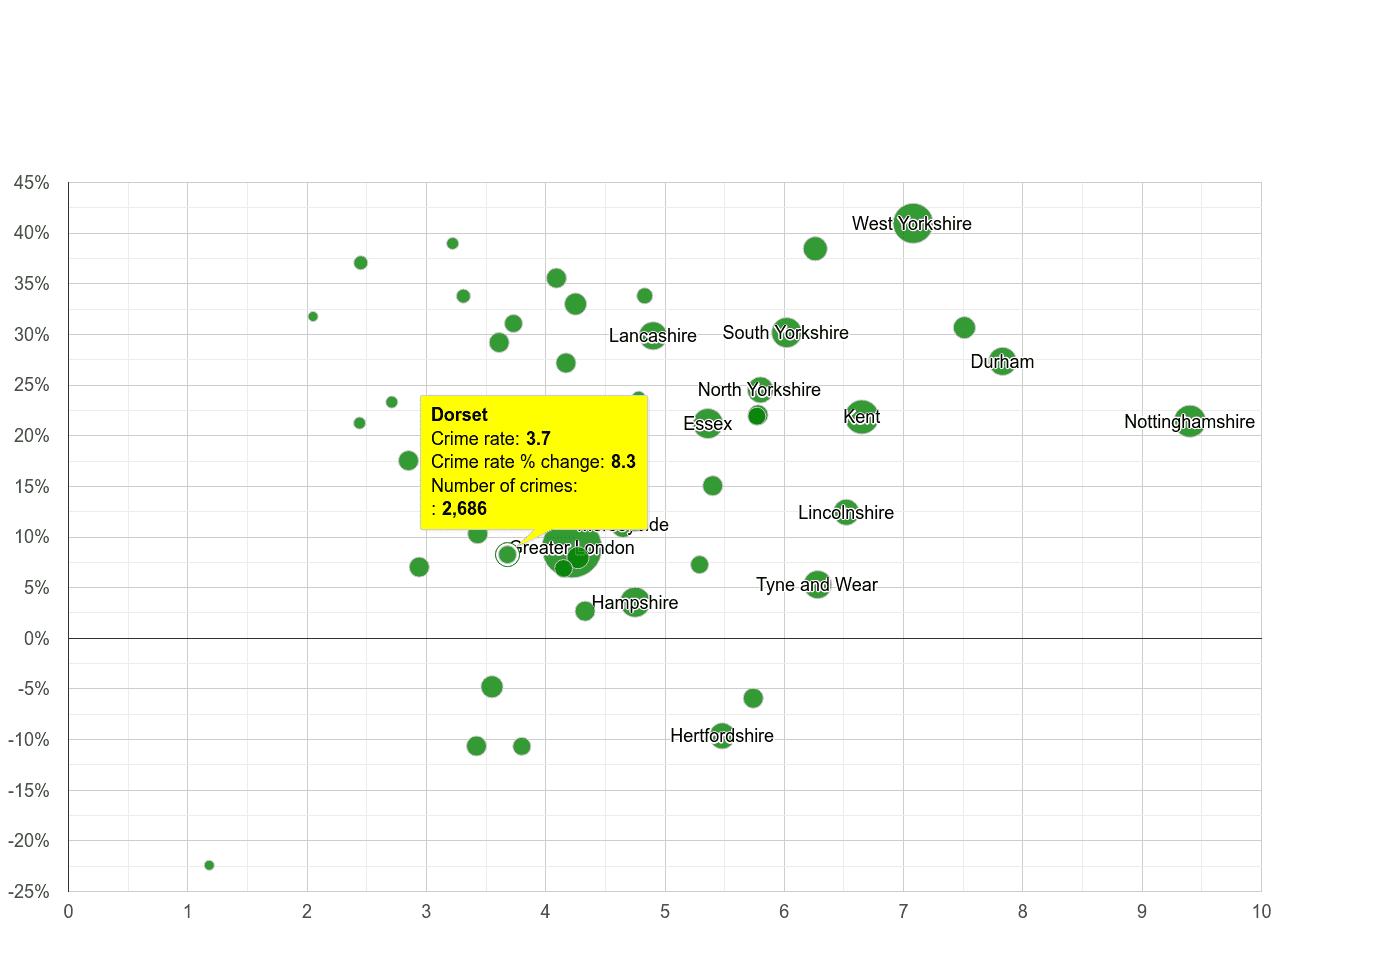 Dorset shoplifting crime rate compared to other counties